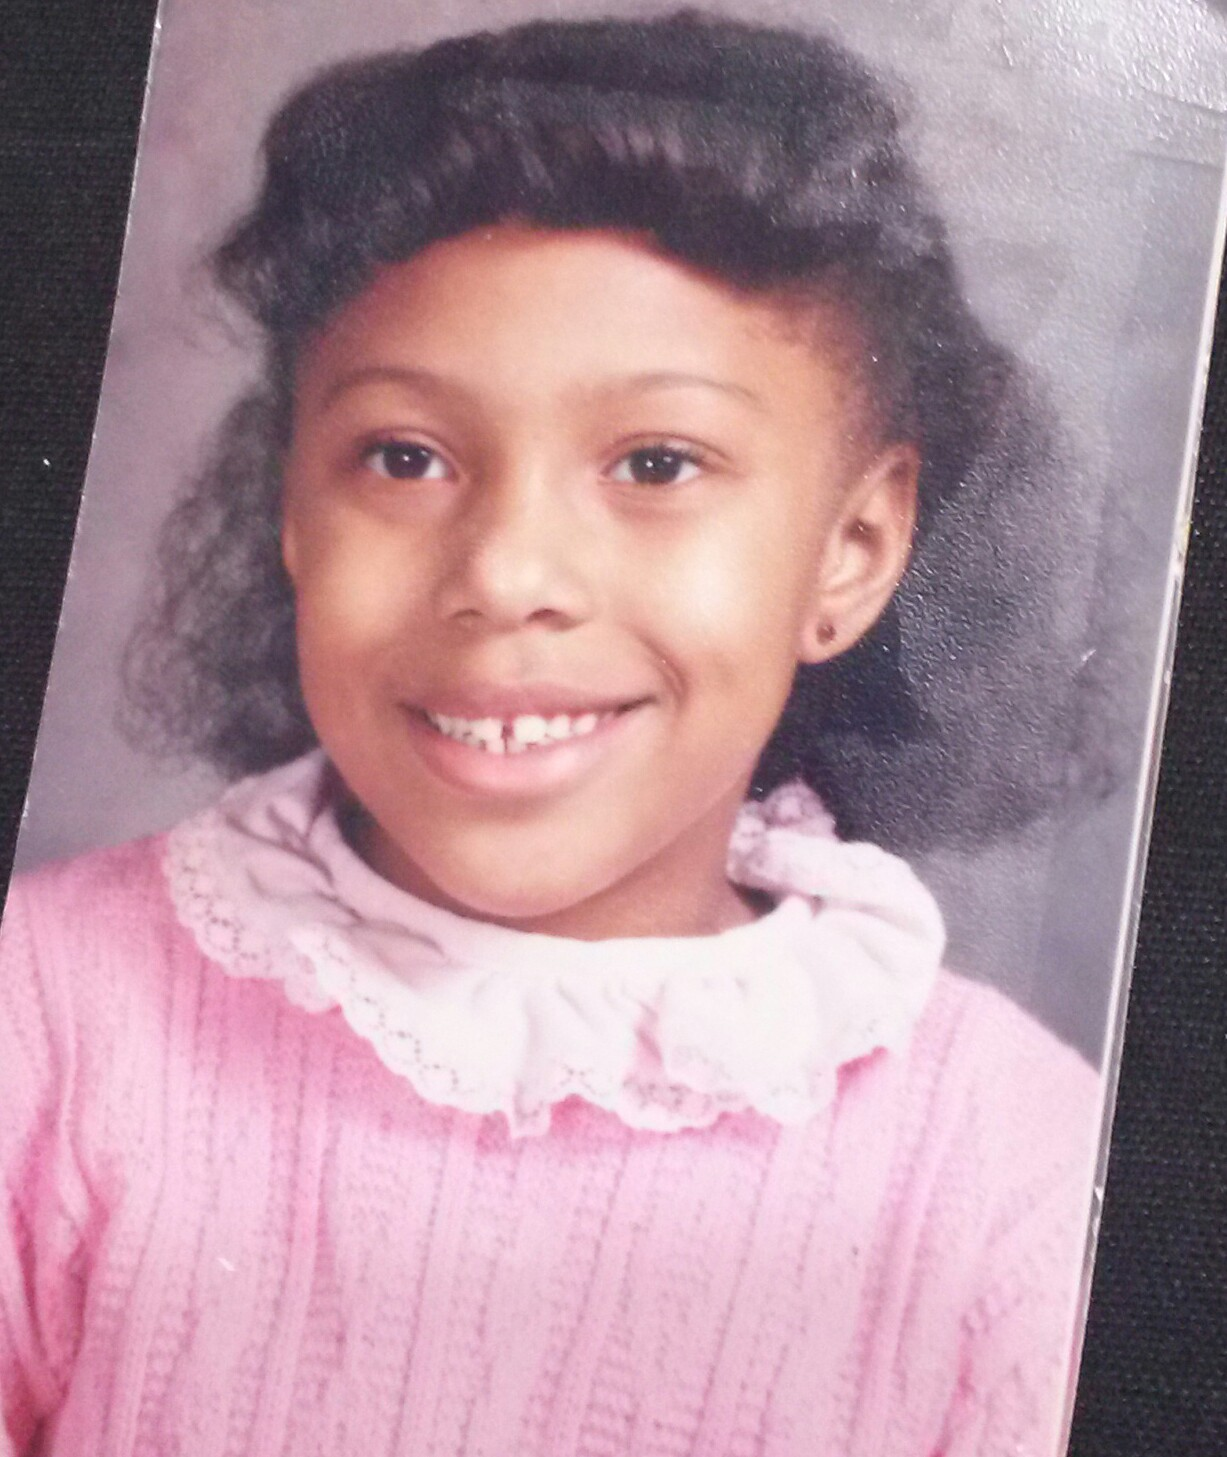 Me at age 5 or 6